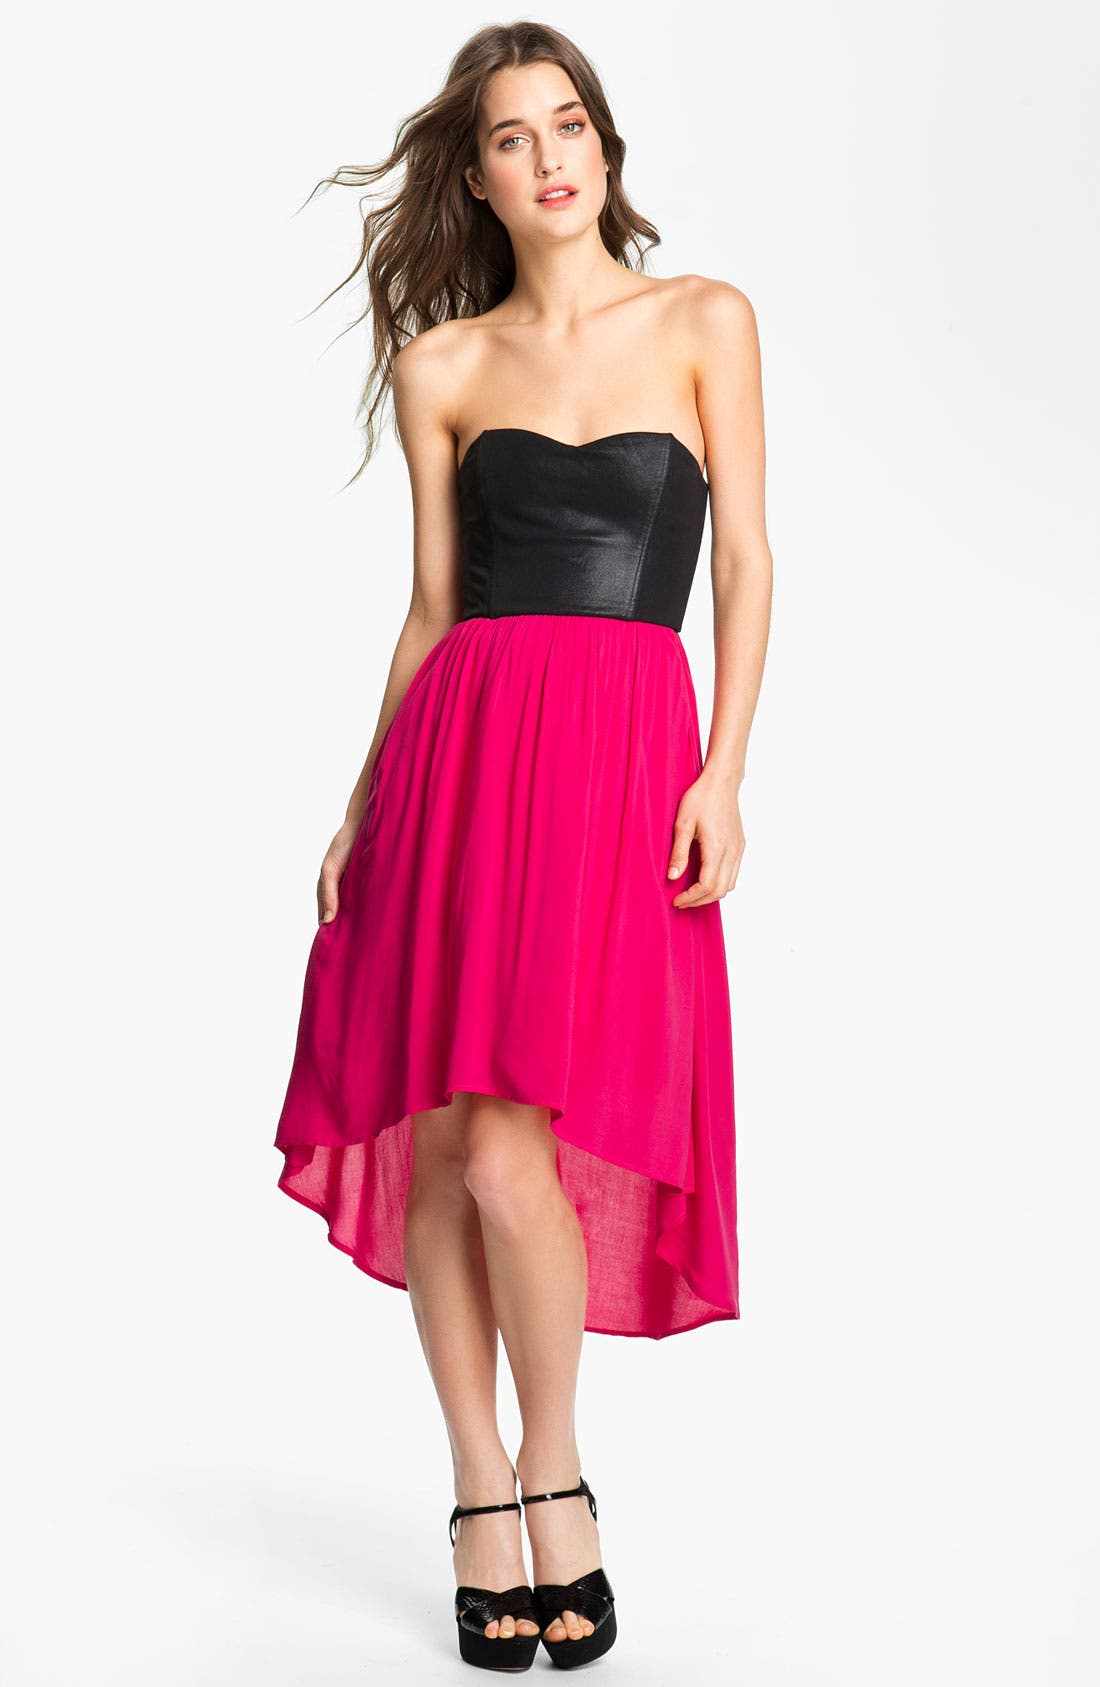 Alternate Image 1 Selected - Ella Moss 'Roslyn' Colorblock Strapless Dress